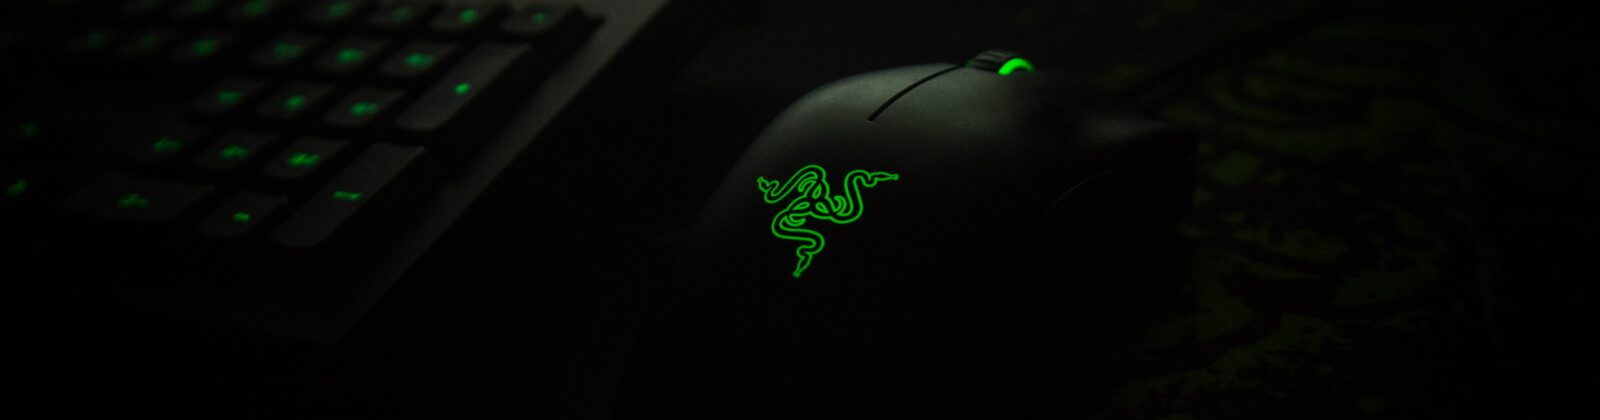 A green gaming mouse and keyboard glowing in the dark